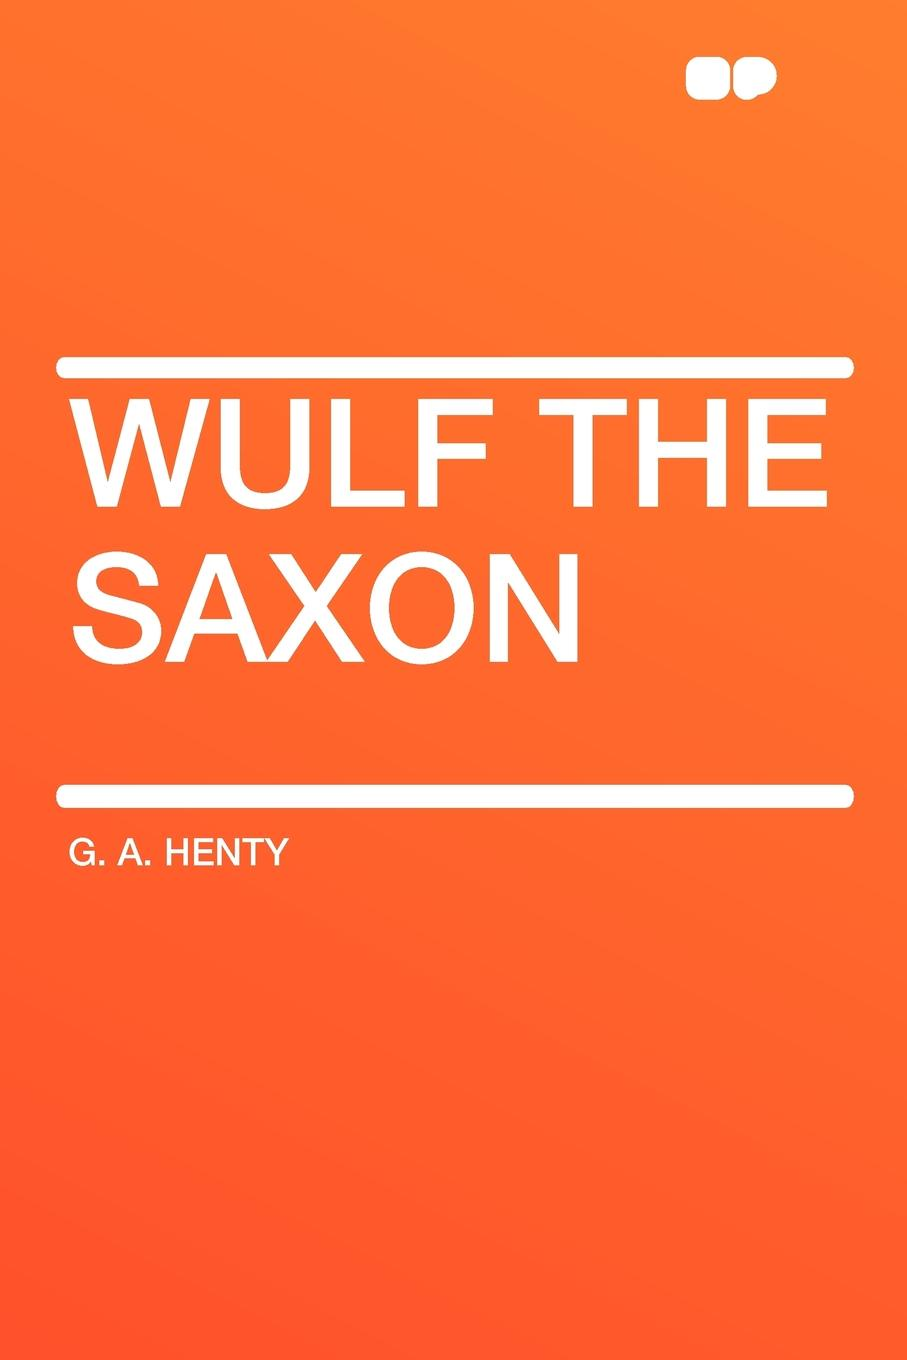 лучшая цена G. A. Henty Wulf the Saxon